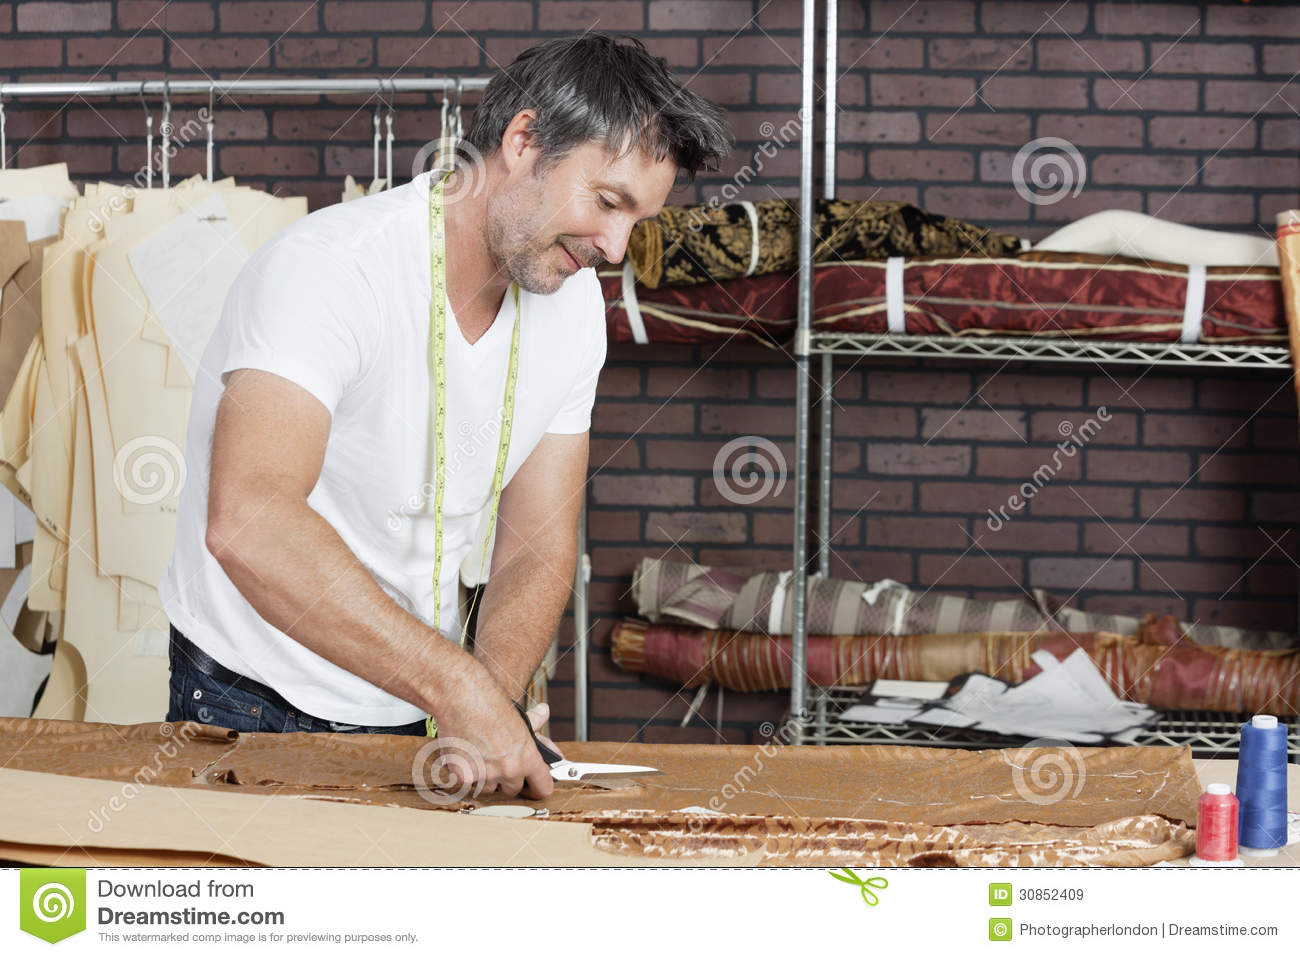 Mature Male Dressmaker Cutting Fabric In Design Studio Stock Image - Image 30852409-3849